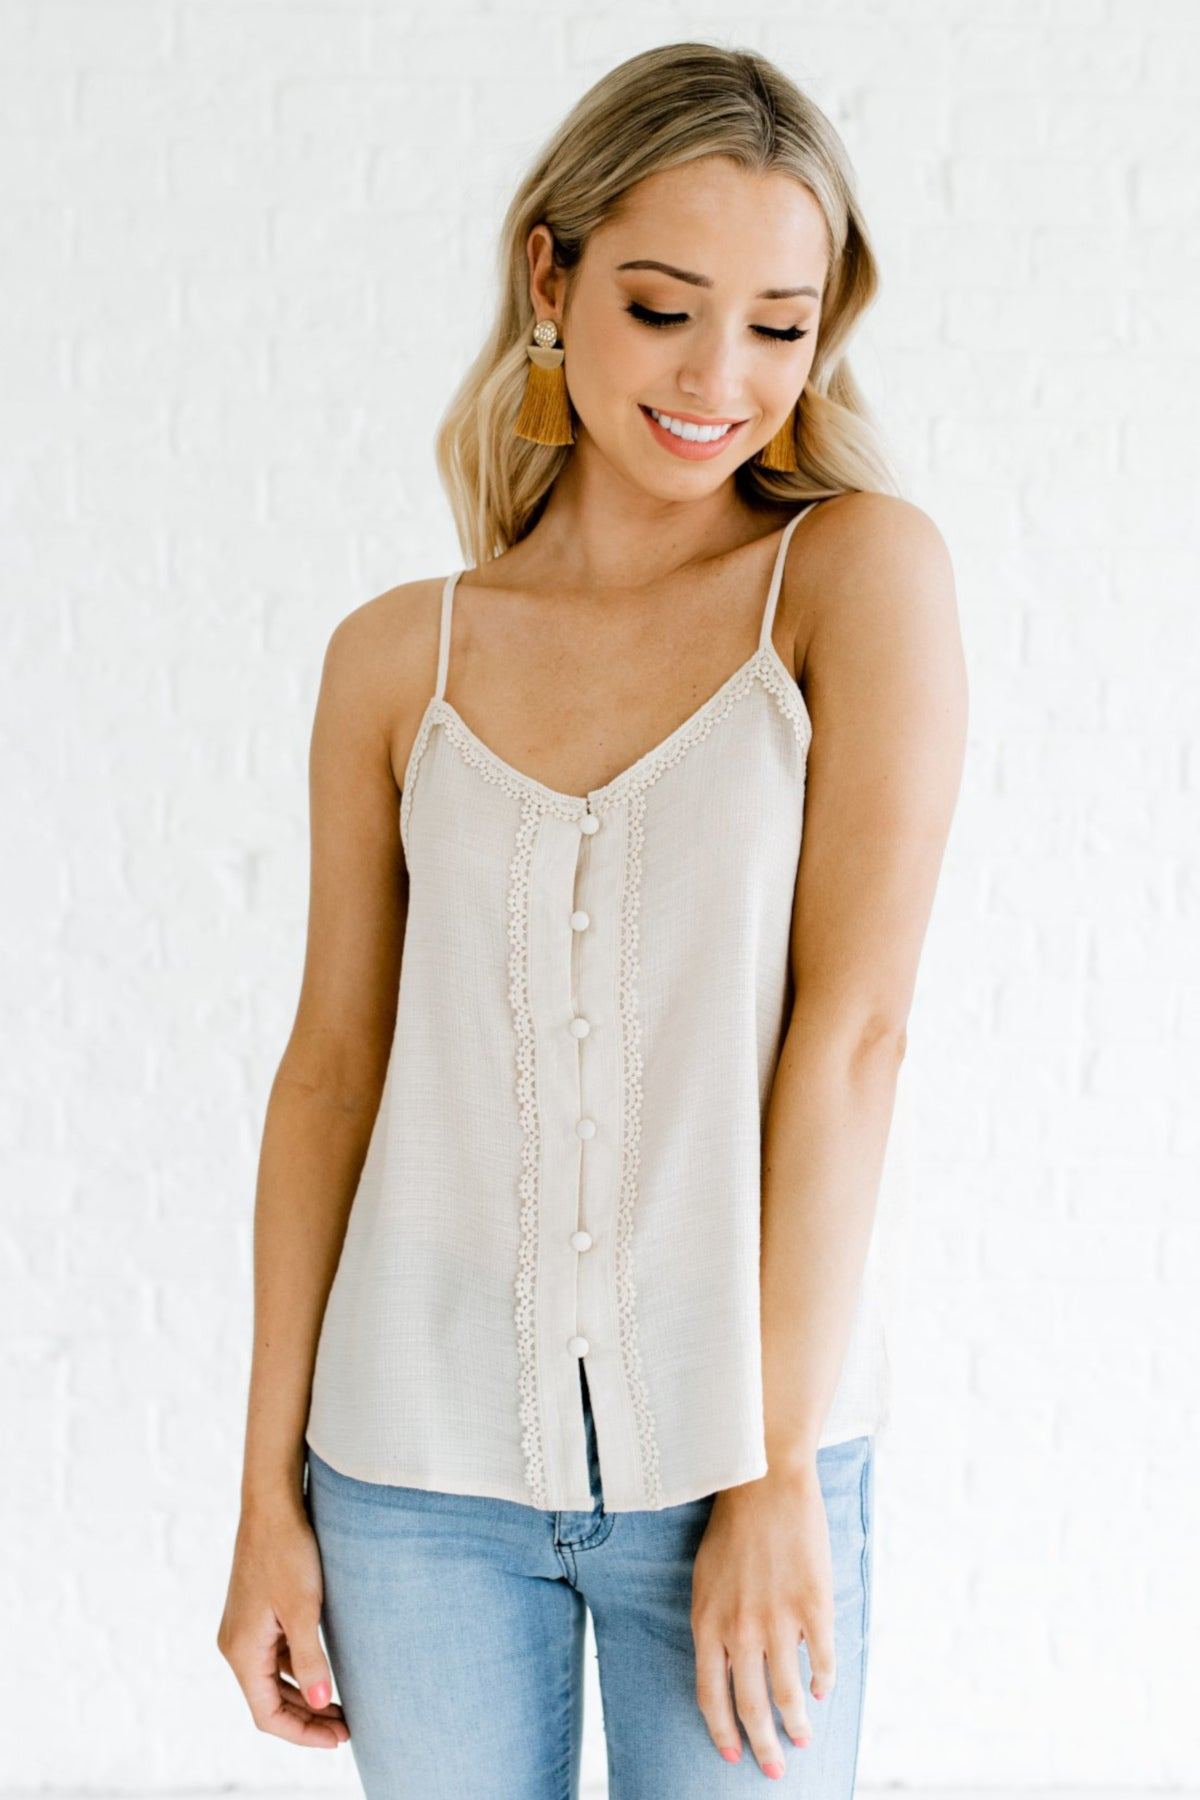 Cream Crochet Trim Button Up Tank Tops Affordable Online Boutique